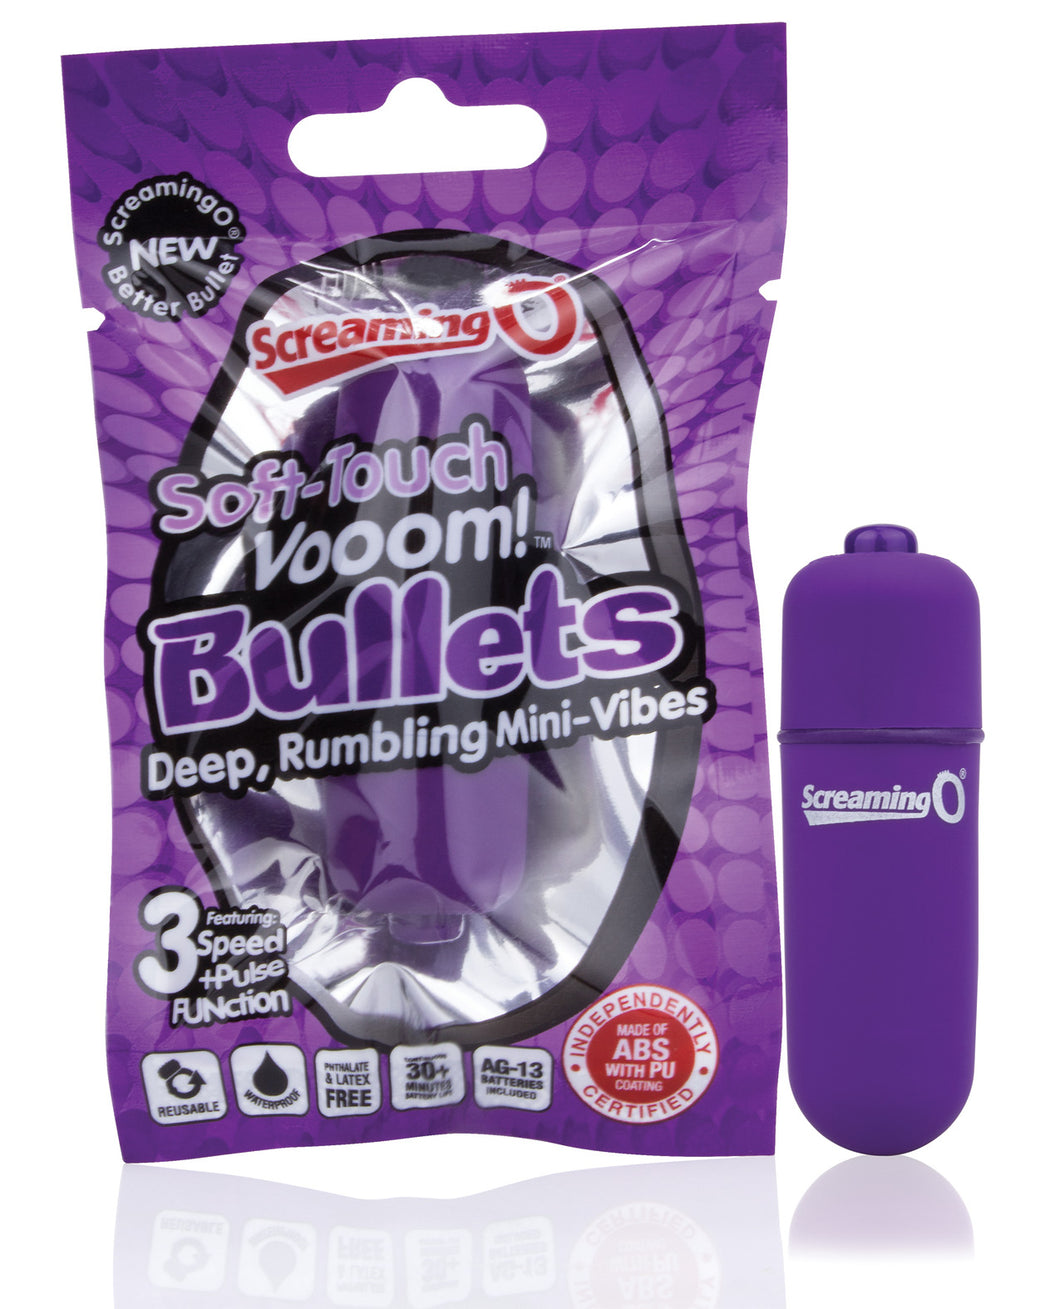 Screaming O Soft Touch Vooom Bullet - Purple